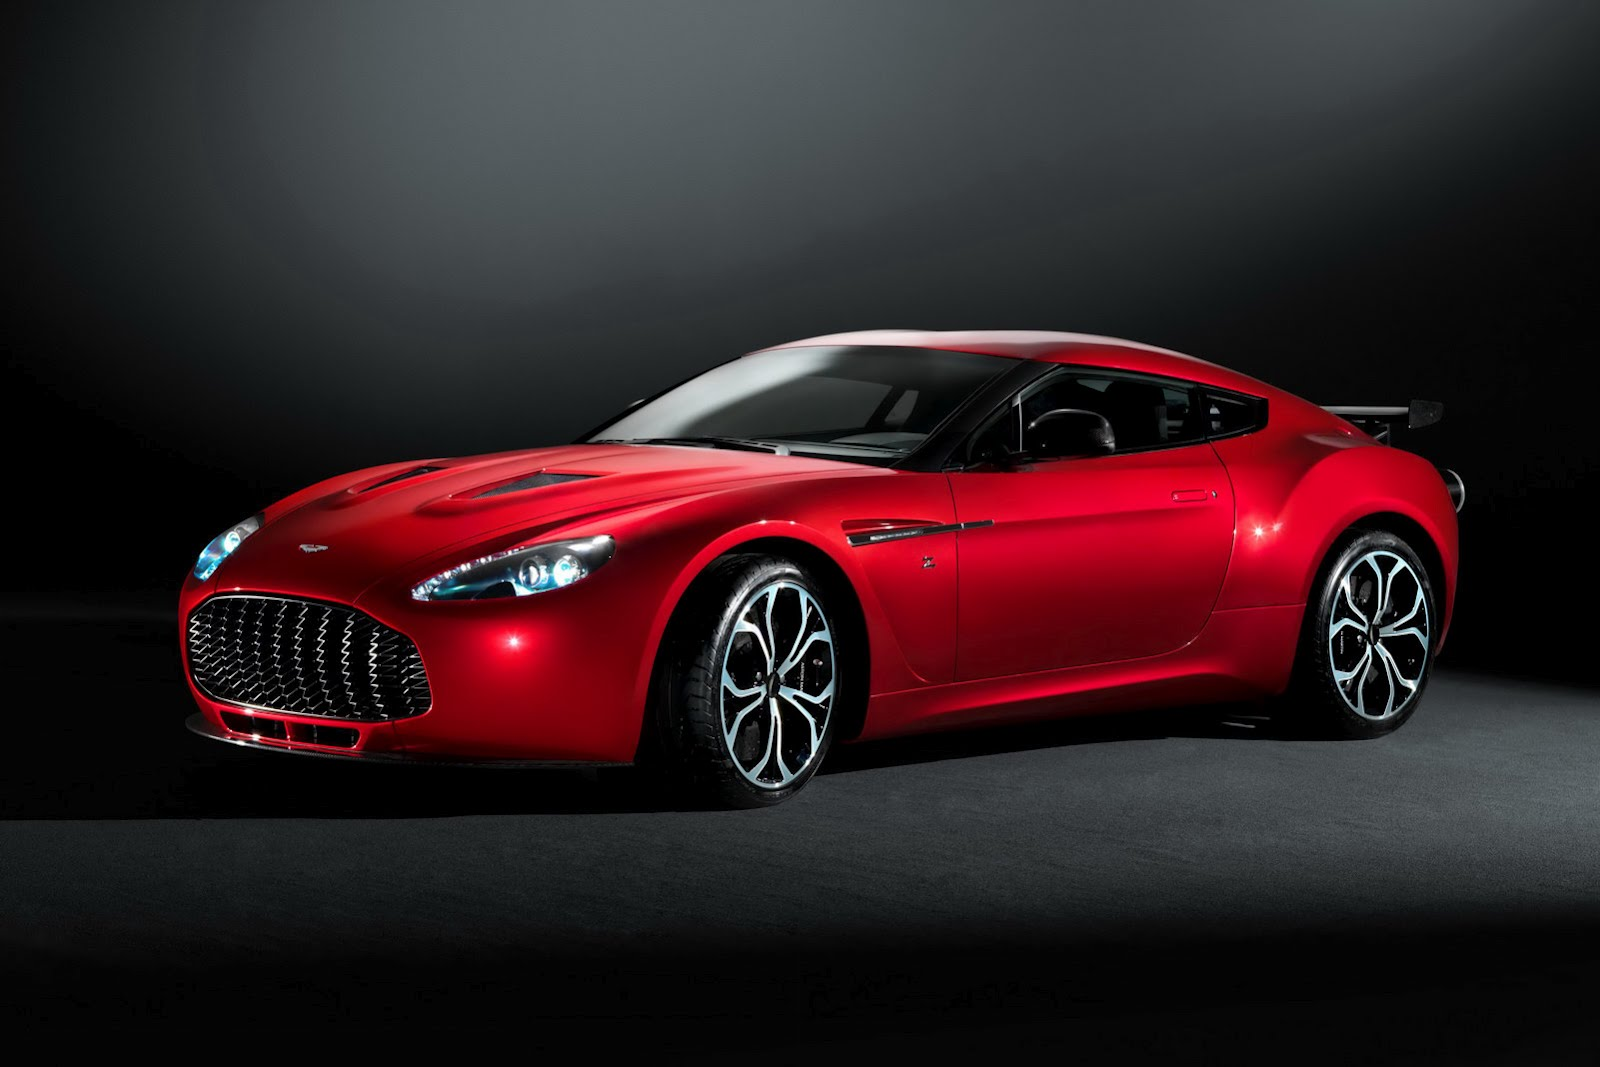 Aston Martin V12 Zafato Final Version of Aston Martin V12 Zagato   More Performance Based, Classic in Design with a Compact Drive Train Kit